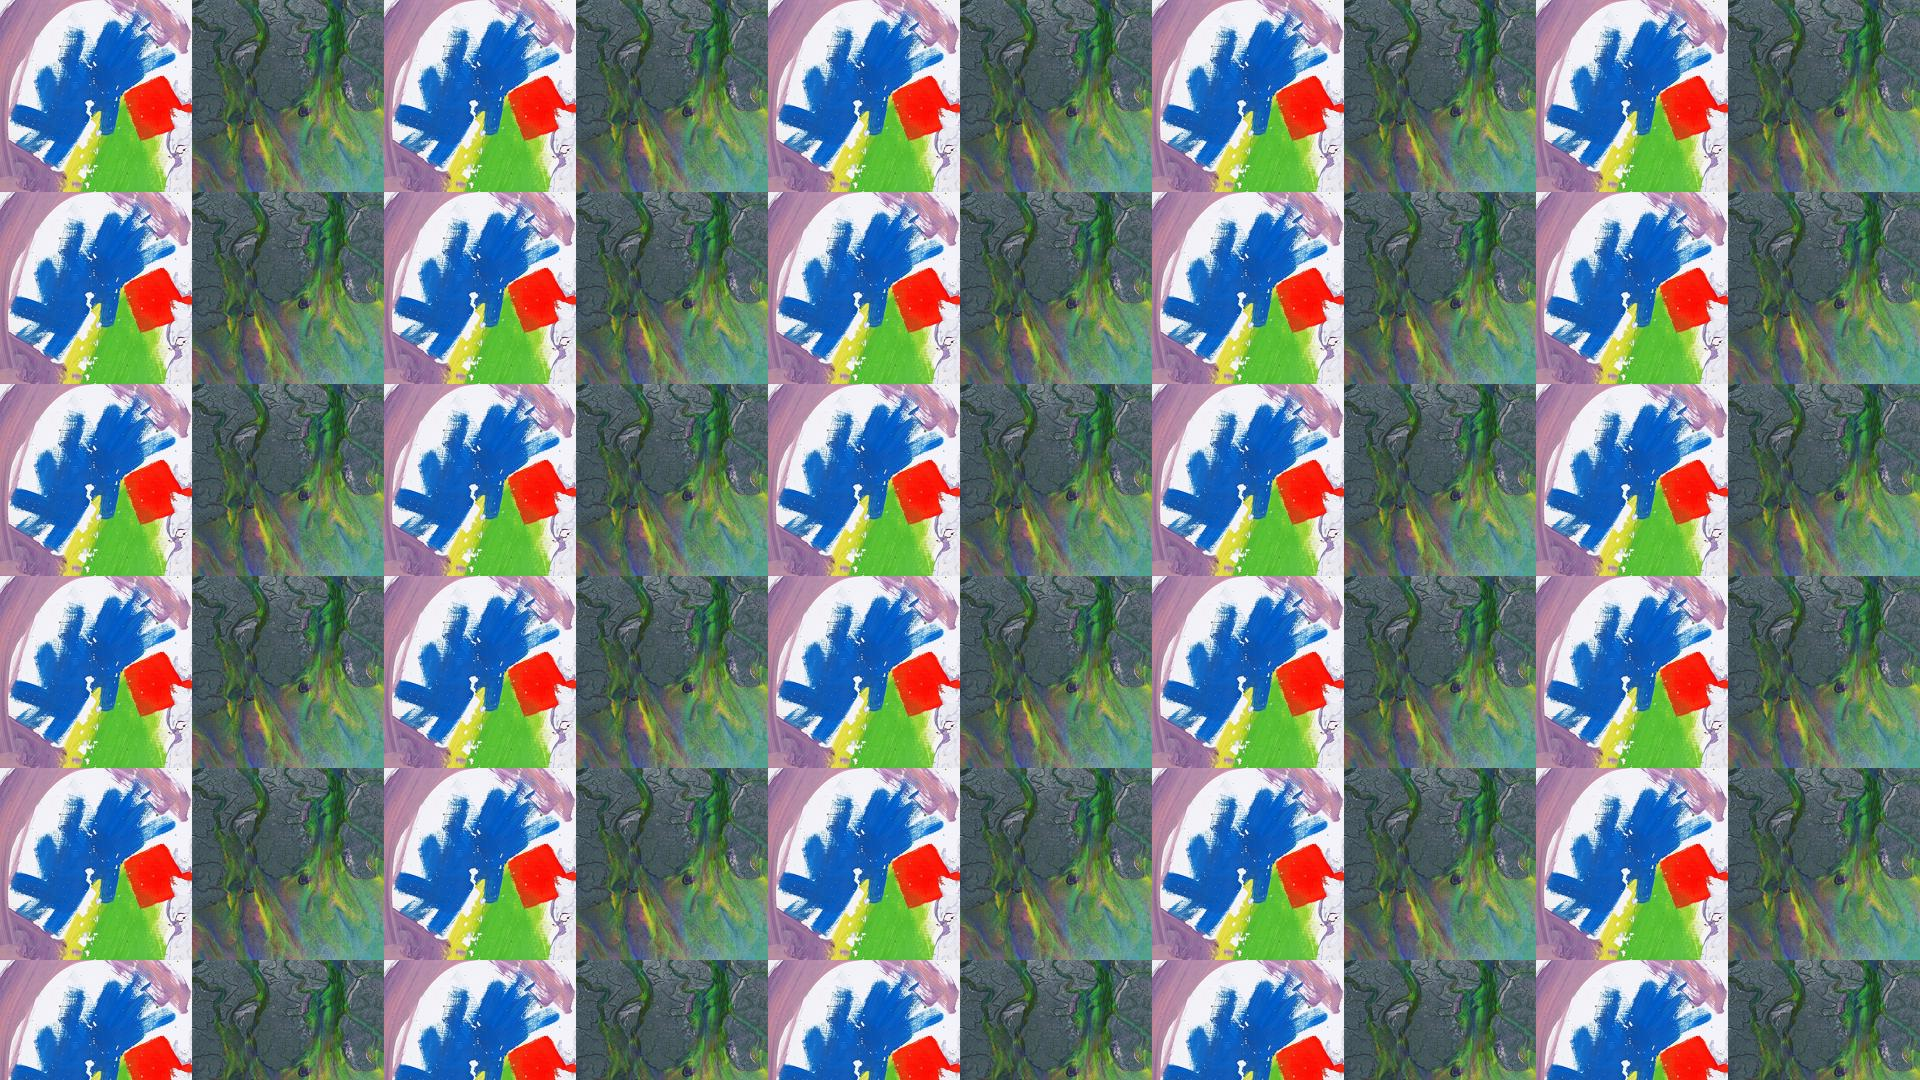 Alt J This All Yours An Awesome Wave Wallpaper Tiled Desktop